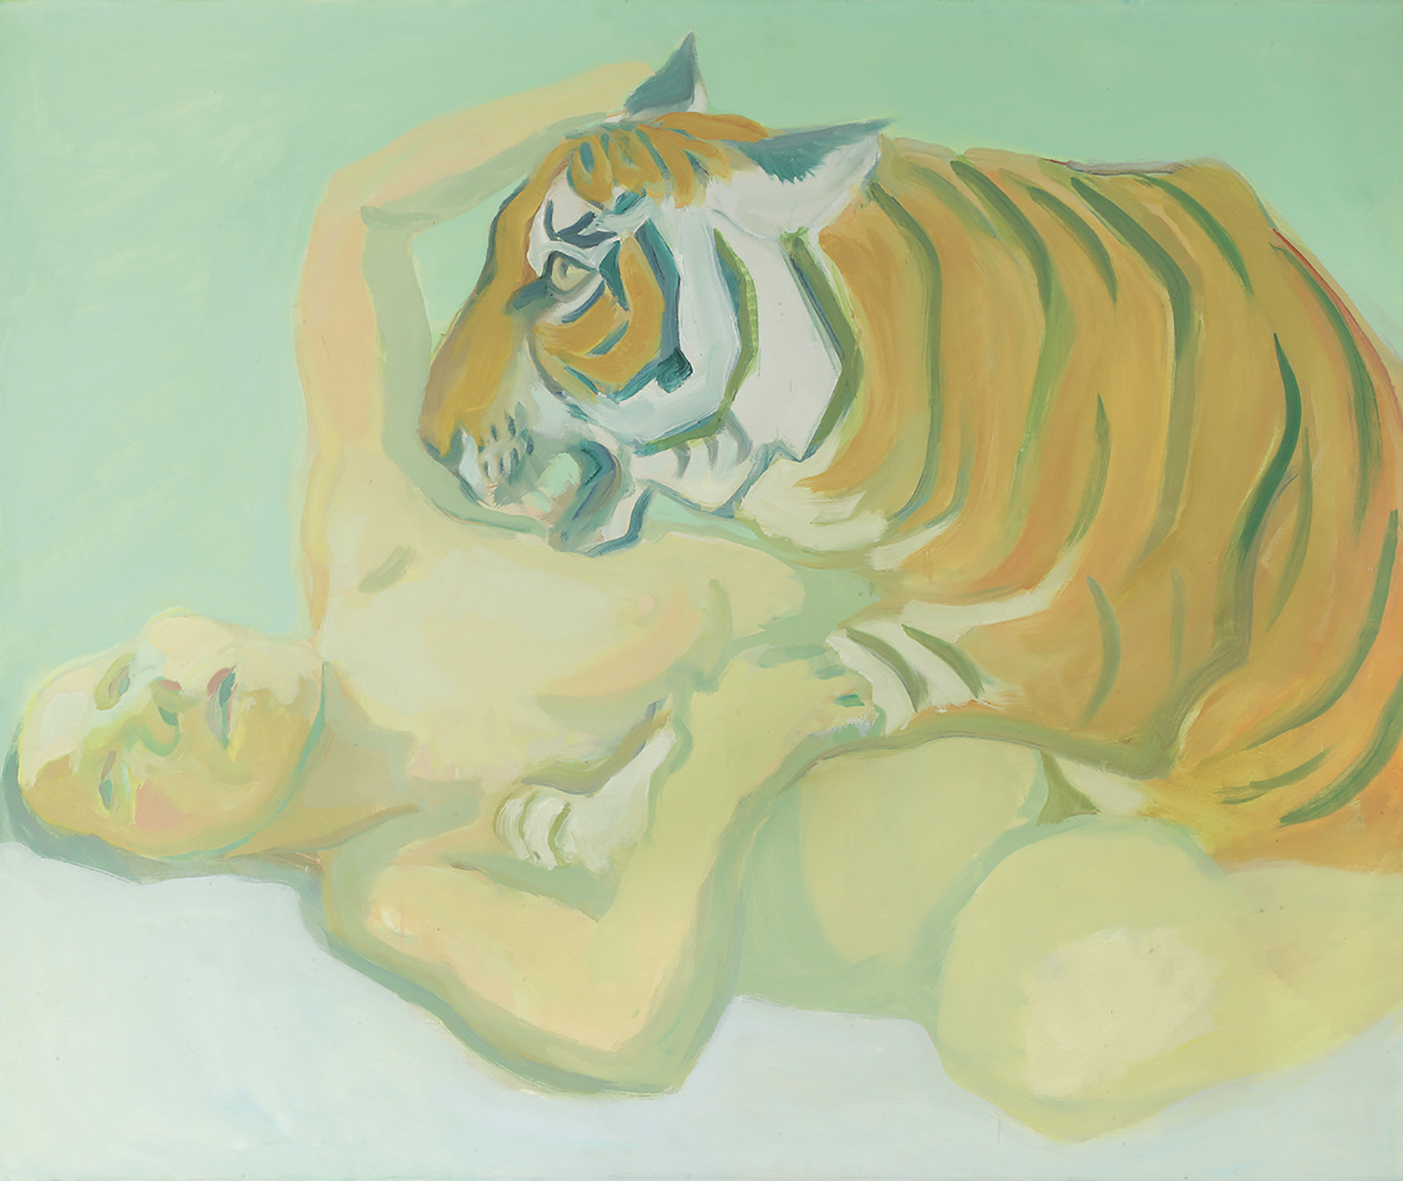 Maria Lassnig, Sleeping with a Tiger, 1975. Maria Lassnig Foundation